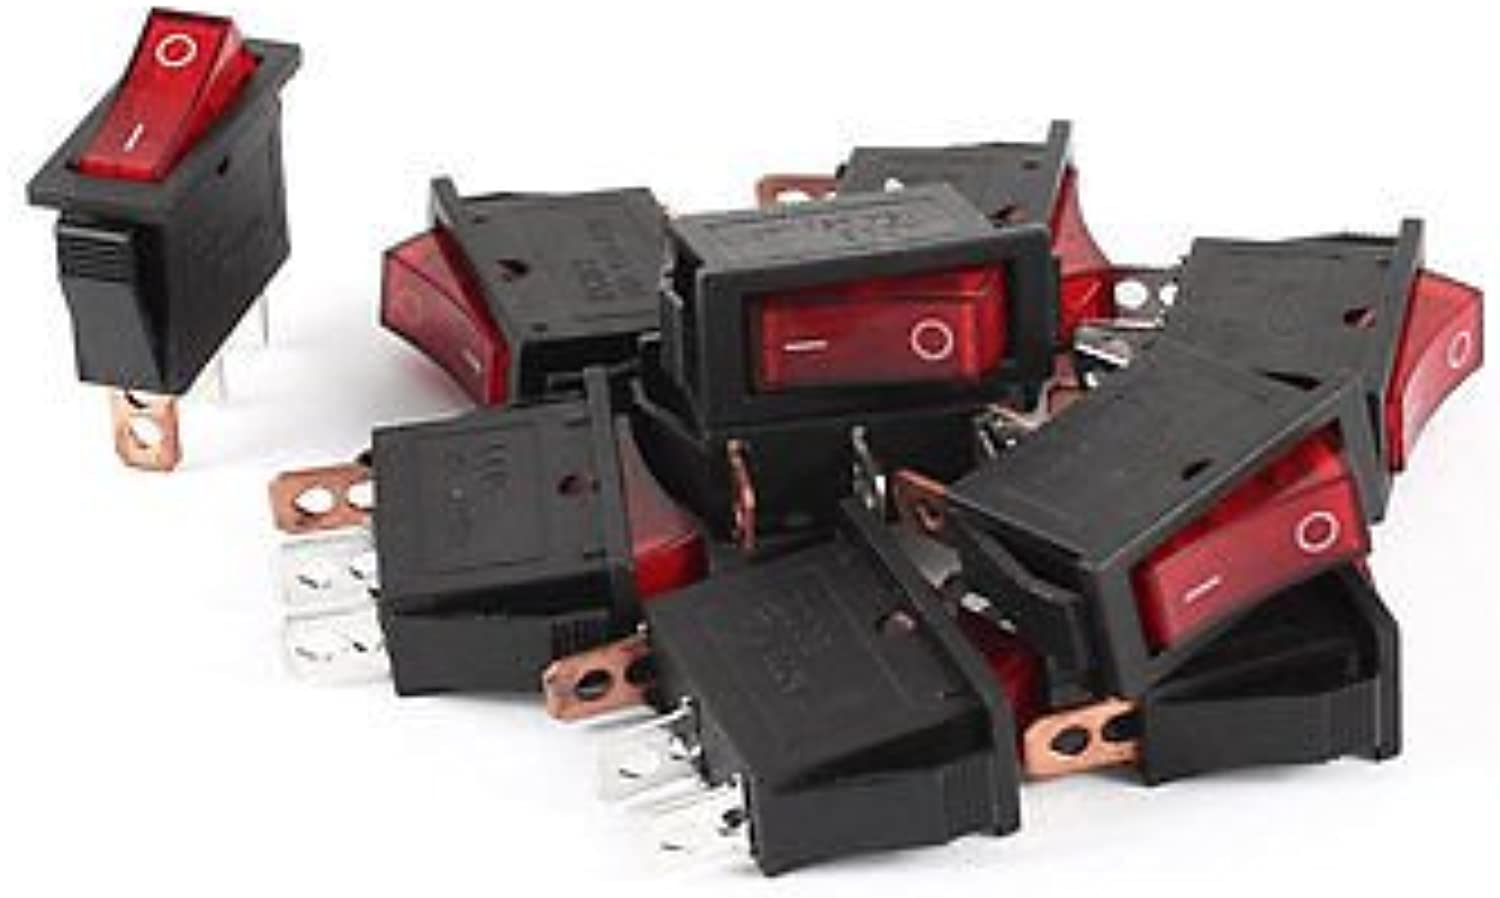 10 x AC 250V 15A 3 Terminal SPST Red Neon Lamp O F Boat Rocker Switch KCD3101N